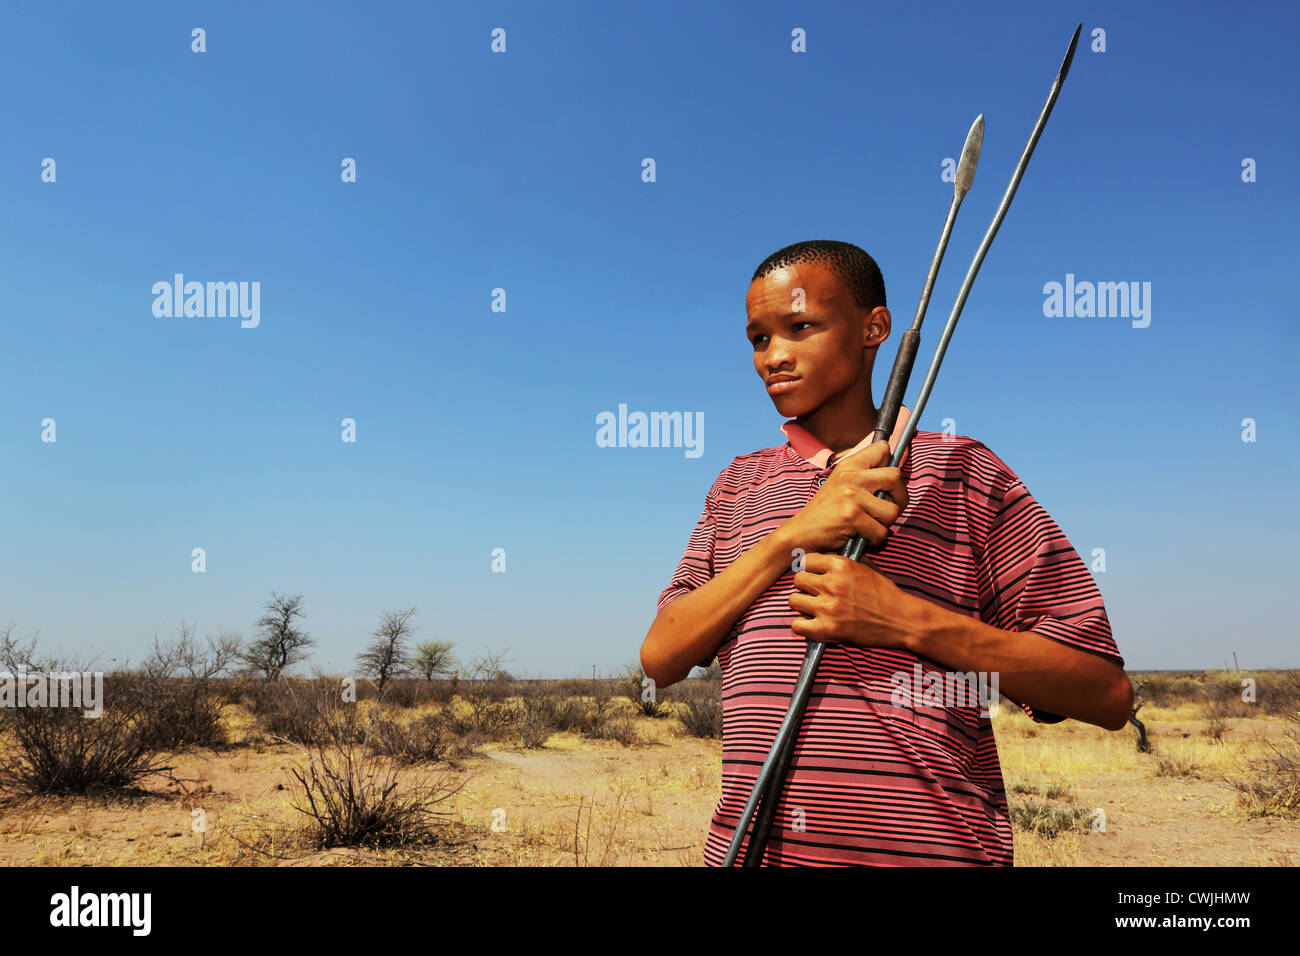 Boy of the indigenous San tribe with spears, Namibia, Kalahari desert - Stock Image